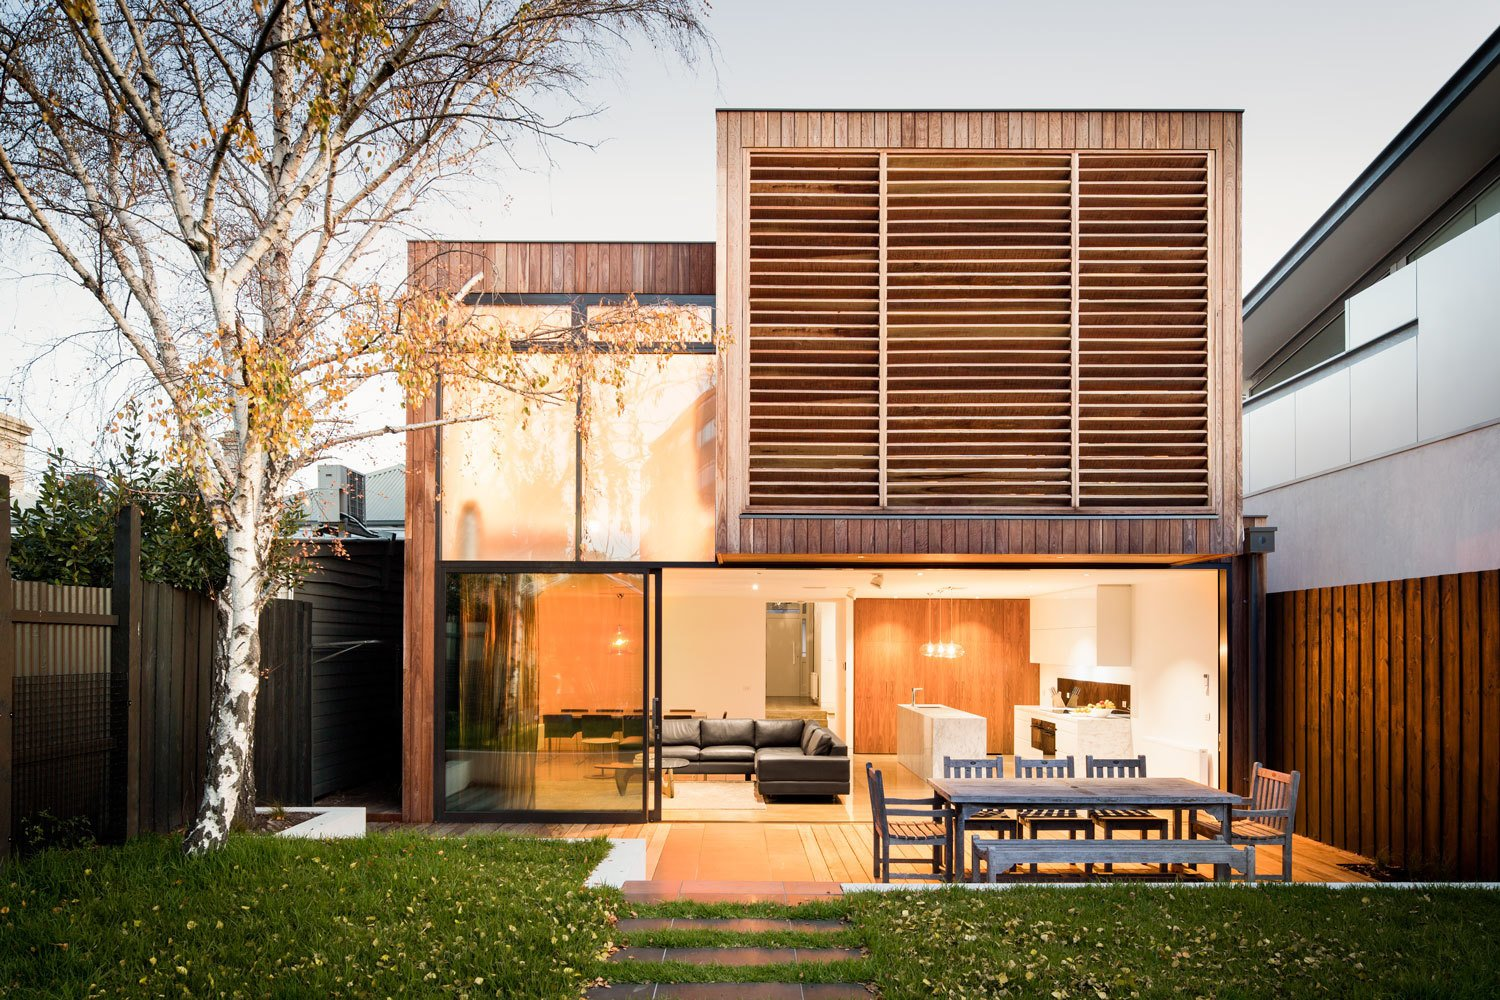 Outdoor, Back Yard, Grass, Trees, Walkways, Wood Fences, Wall, Vertical Fences, Wall, Small Patio, Porch, Deck, and Wood Patio, Porch, Deck The family members, who are active and spend ample time at the beach, requested the feel of a seaside retreat. The architects accomplished this with Ironbark wood slats on the exterior—the Australian hardwood is incredibly durable and will weather silver-grey over time. The wooden louvers shade a large playroom that's adjacent to the boy's bedrooms.  A Breezy Modern Addition Opens Up a Historic Melbourne Home by Zachary Edelson